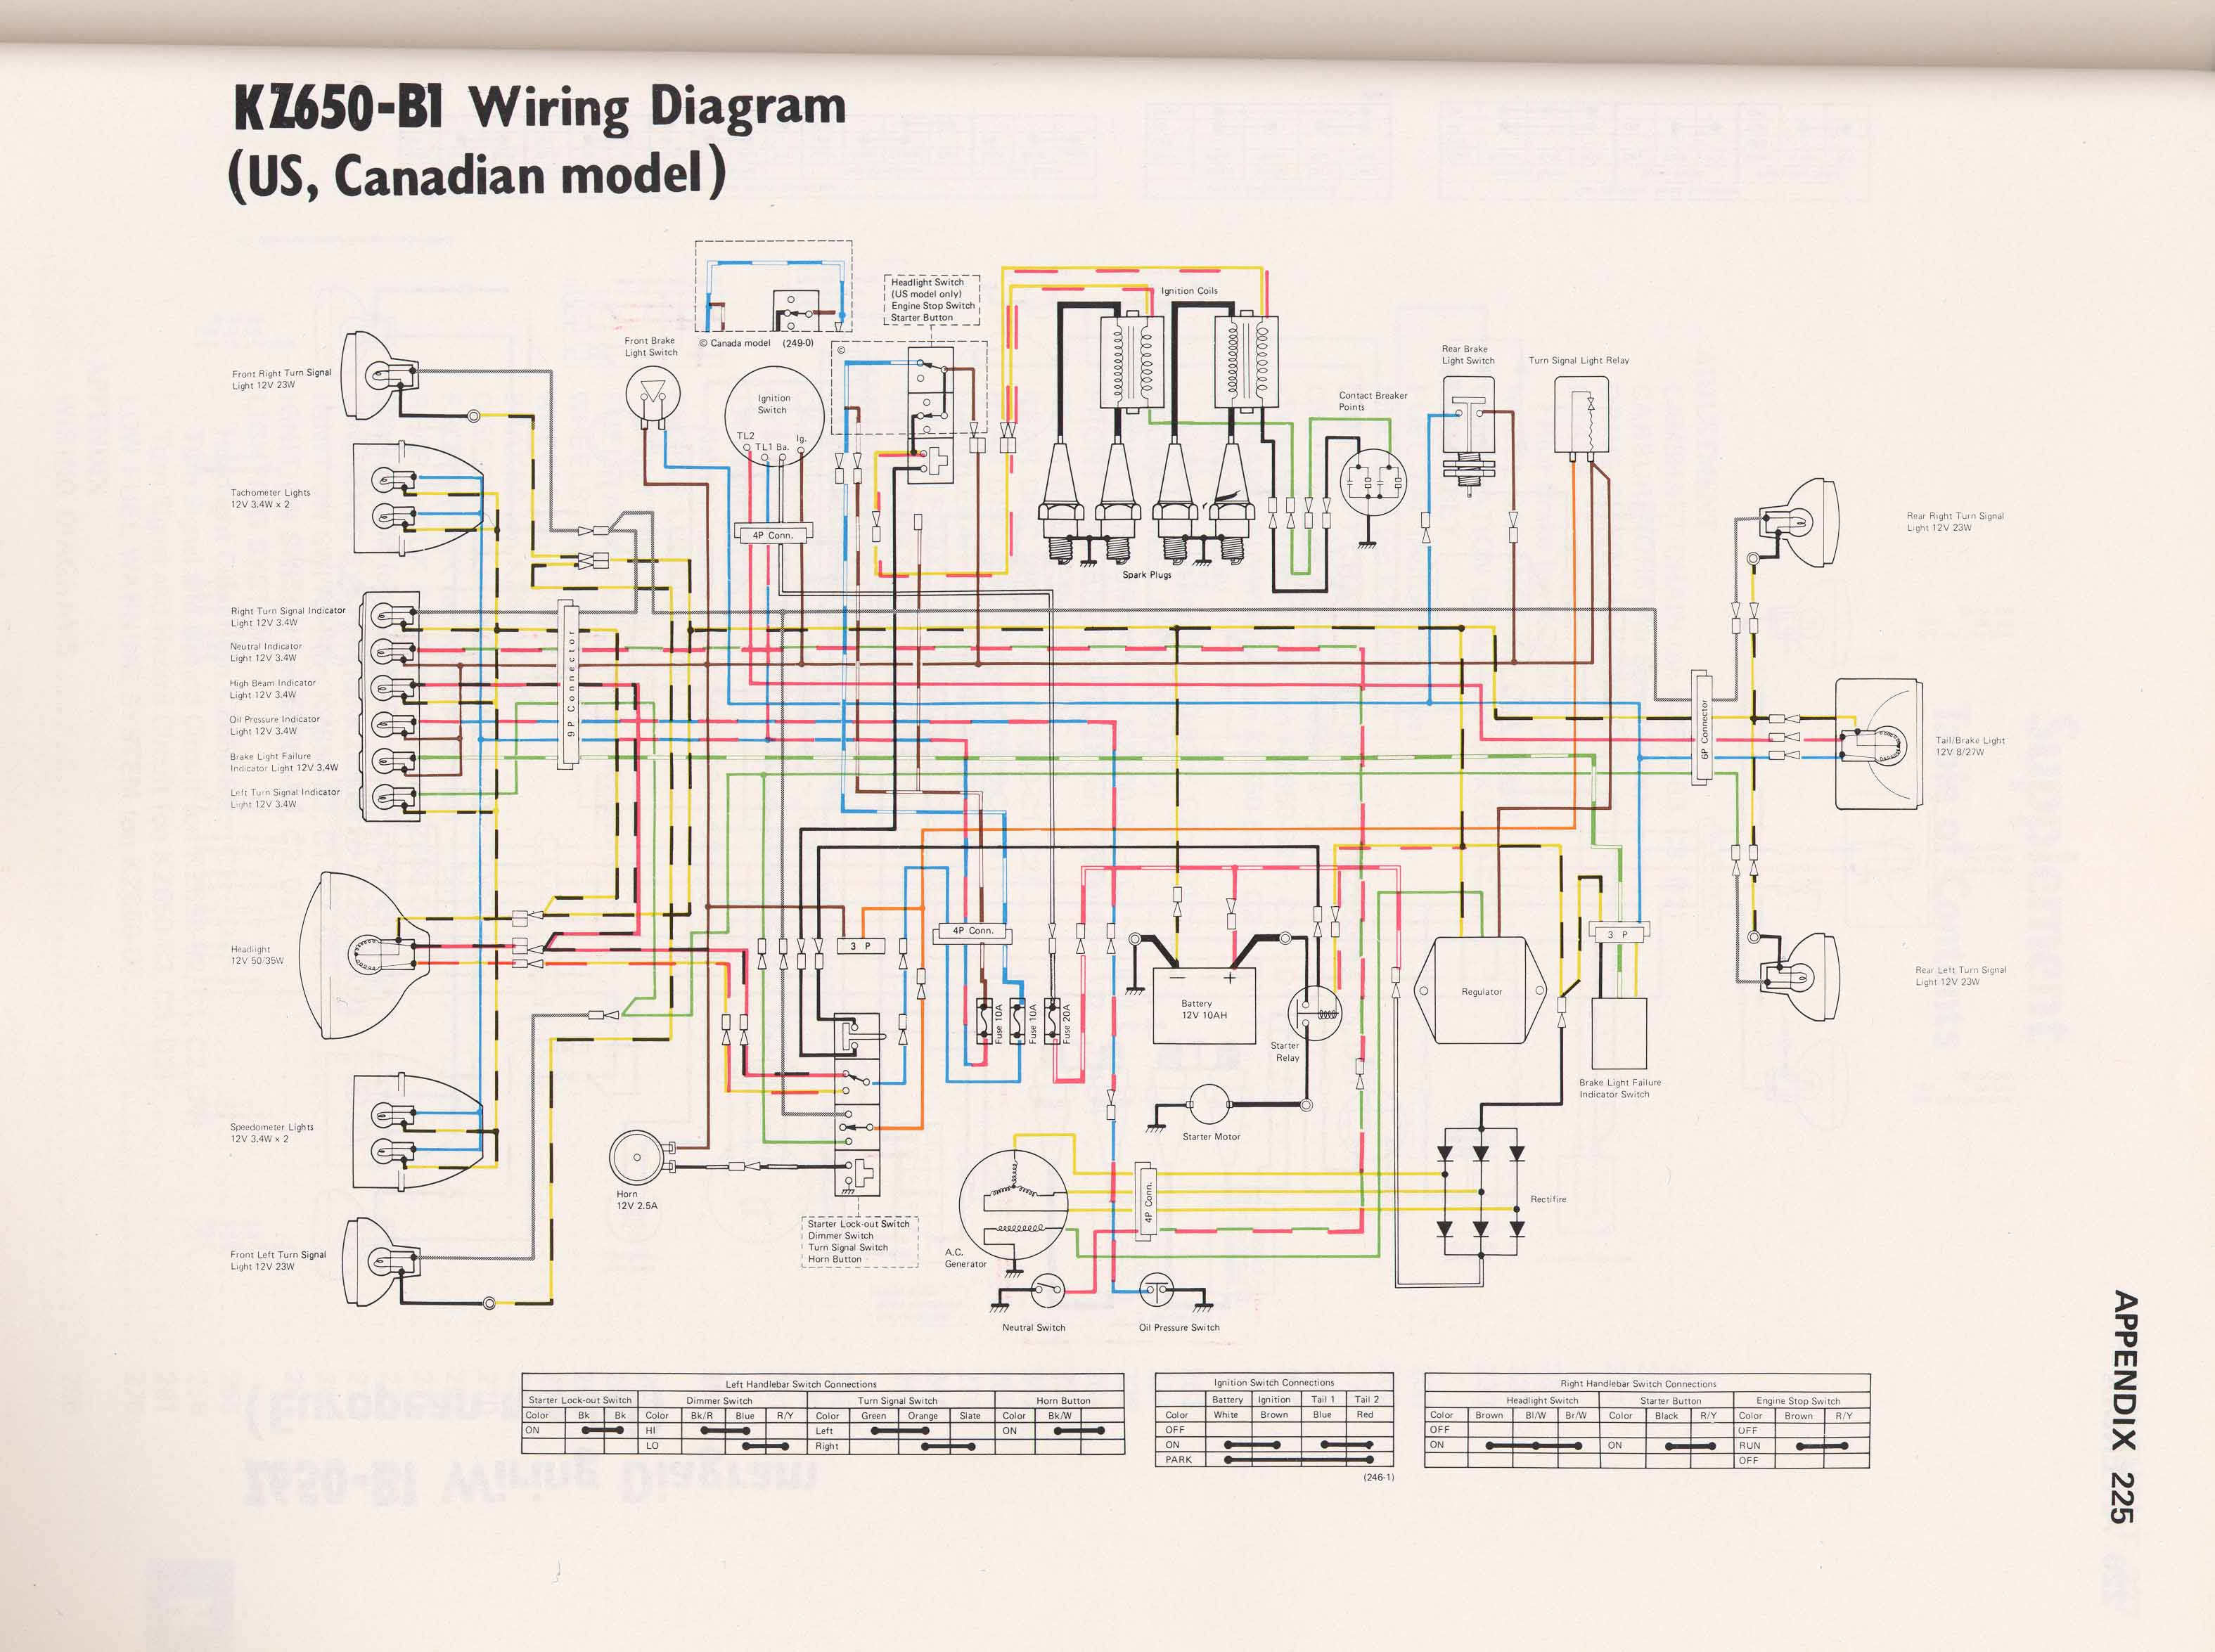 KZ650 B1 1983 kawasaki motorcycle wiring diagrams wiring diagram